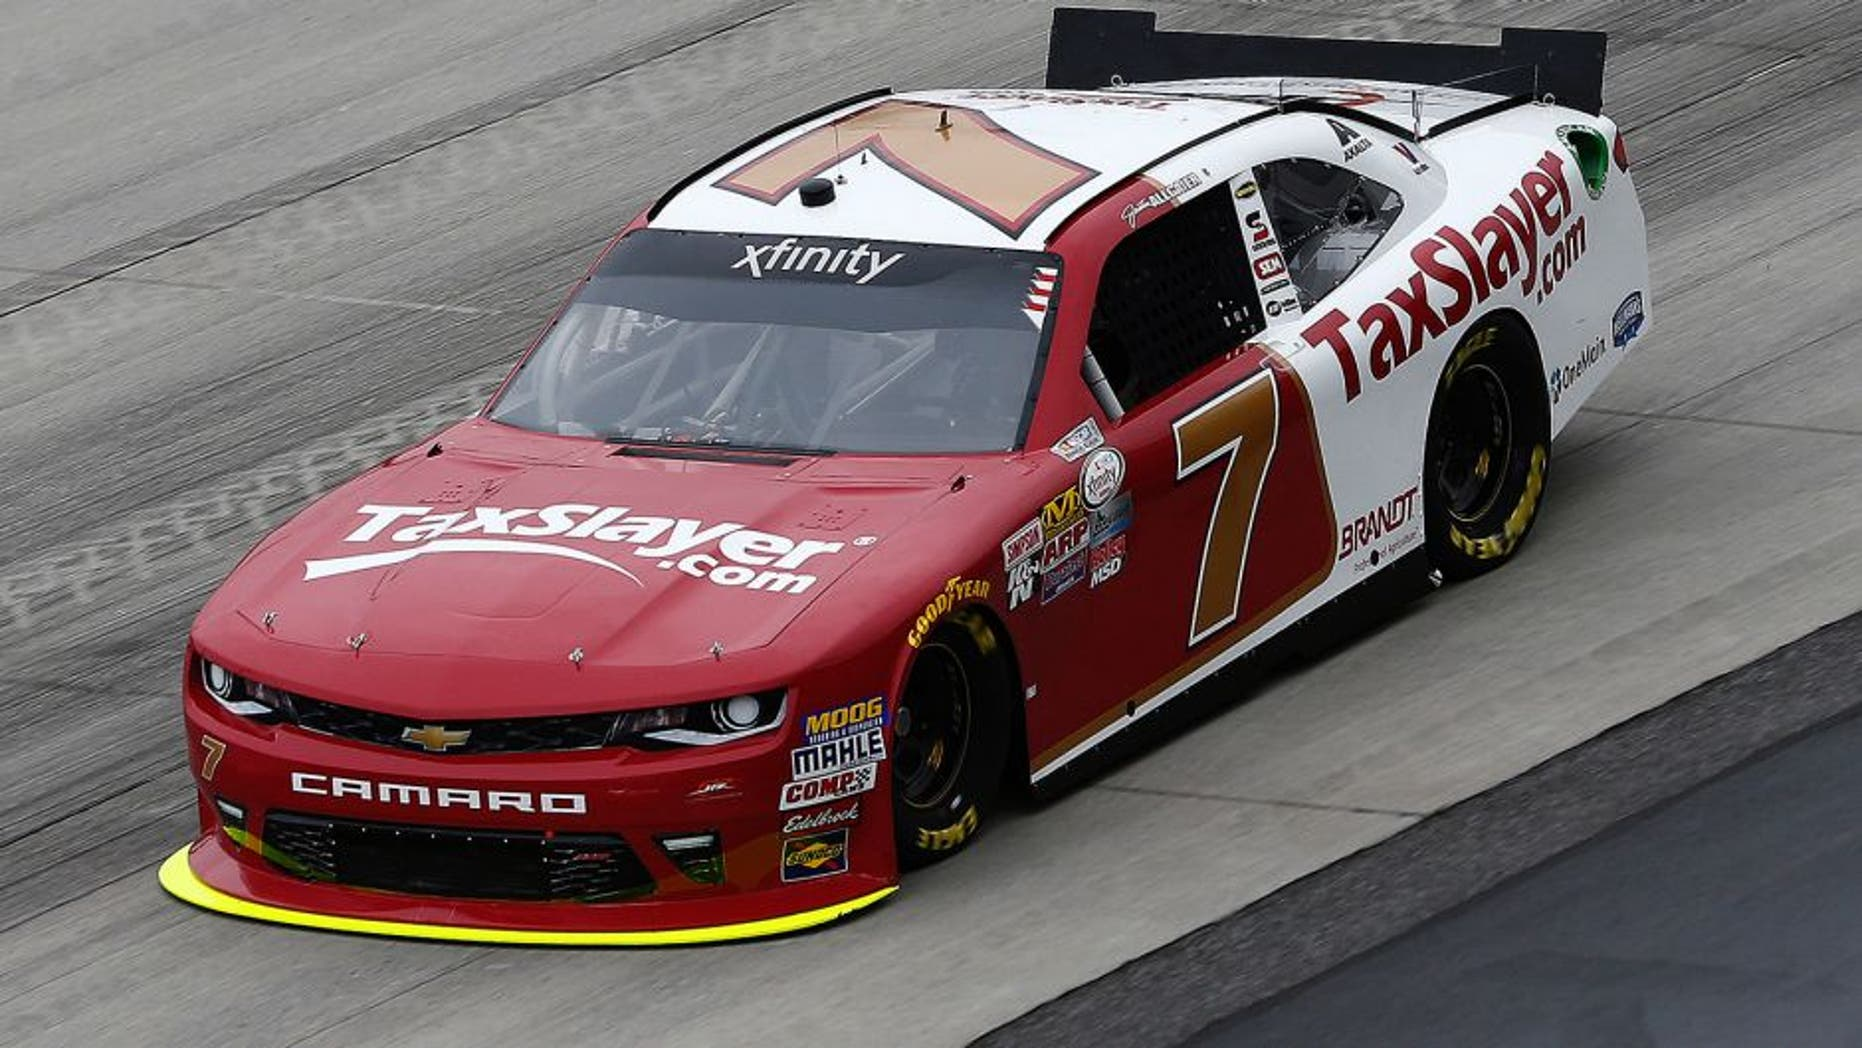 DOVER, DE - MAY 13: Justin Allgaier, driver of the #7 TaxSlayer.com Chevrolet, practices for the NASCAR XFINITY Series Ollie's Bargain Outlet 200 at Dover International Speedway on May 13, 2016 in Dover, Delaware. (Photo by Jeff Zelevansky/NASCAR via Getty Images)